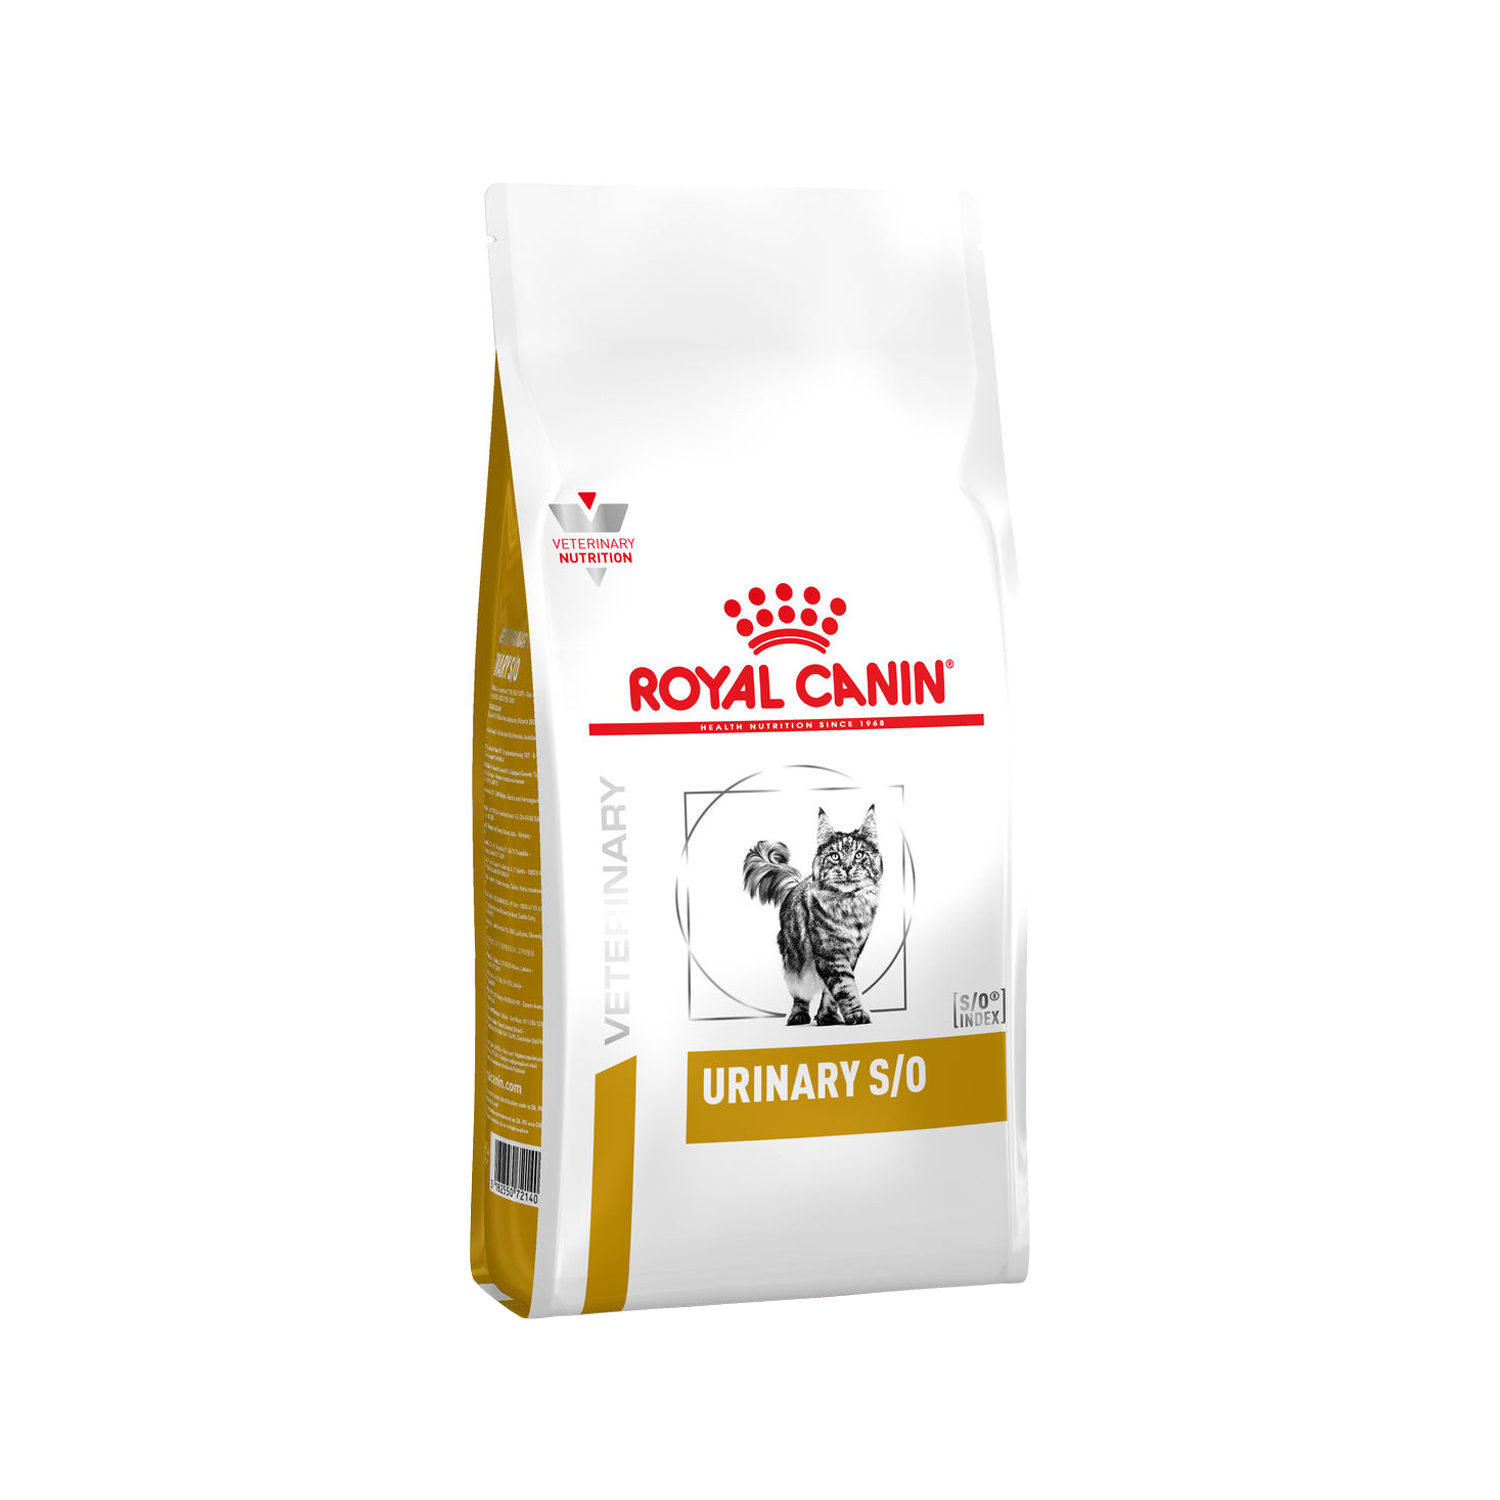 Royal Canin Urinary S/O Katzenfutter